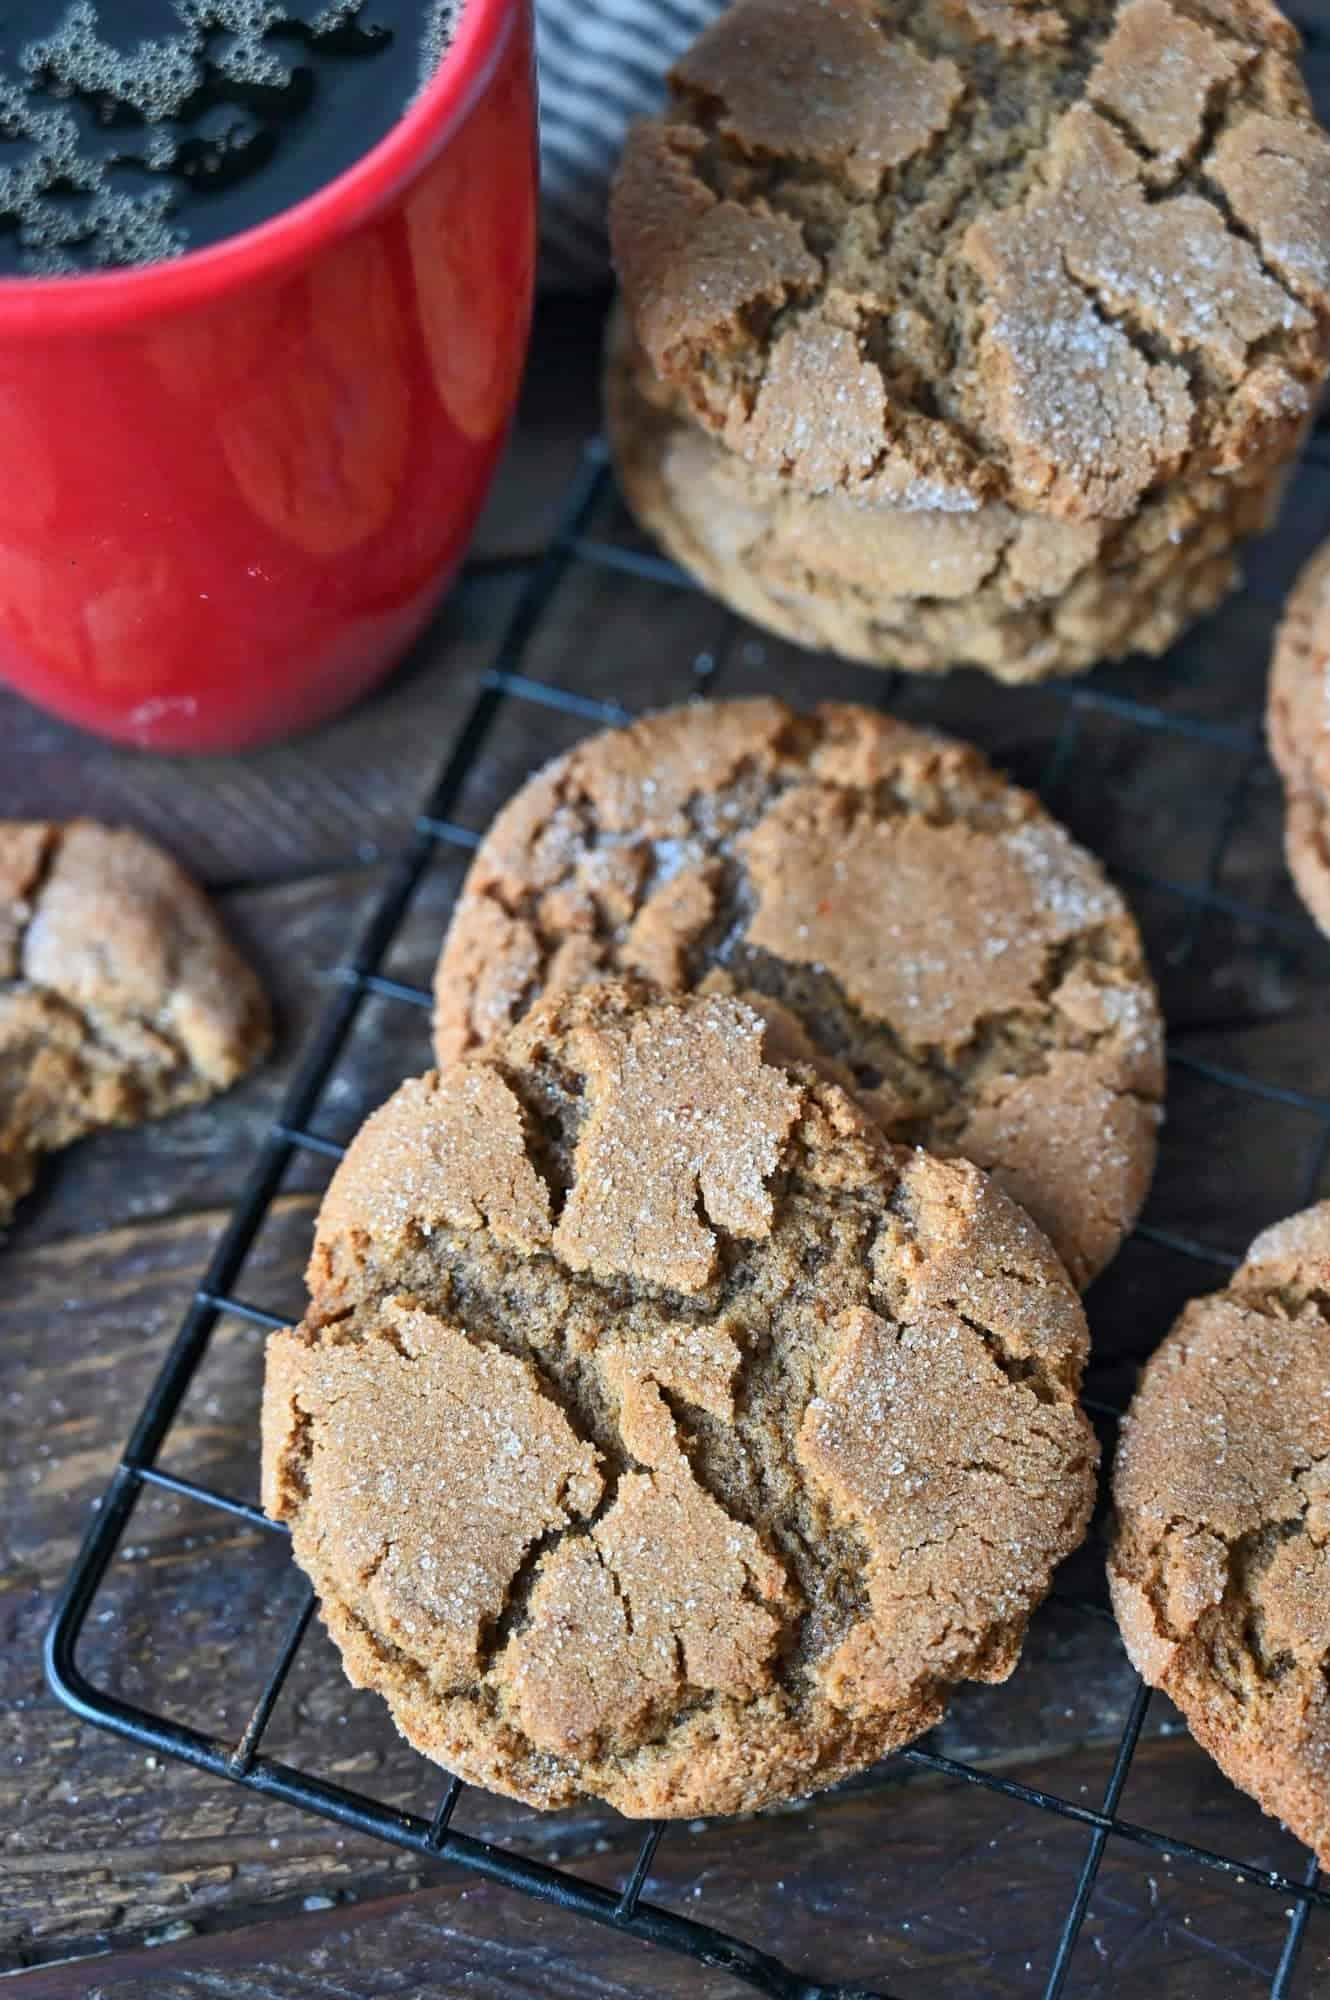 Ginger snap cookies on a cooling rack and a red coffee cup.